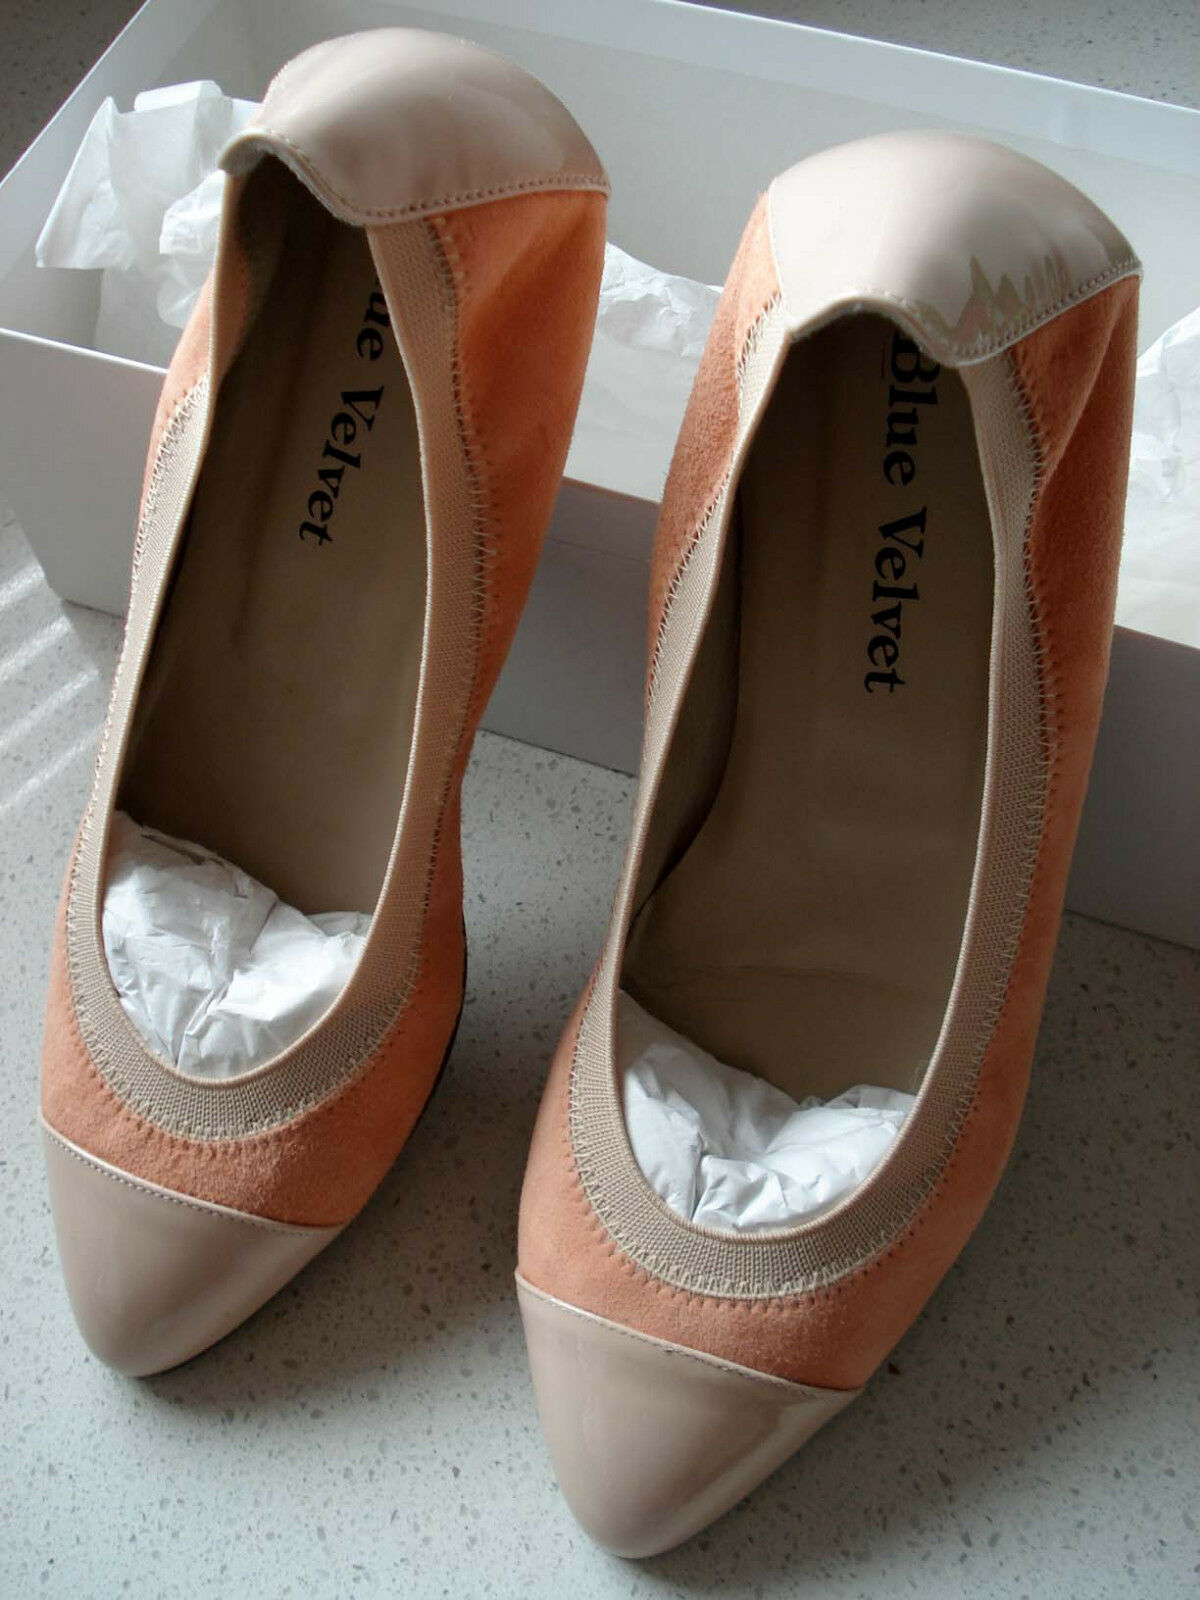 Blue Velvet Pump Peach / Size EU 36.5 / Peach Pump / NEW f87df2